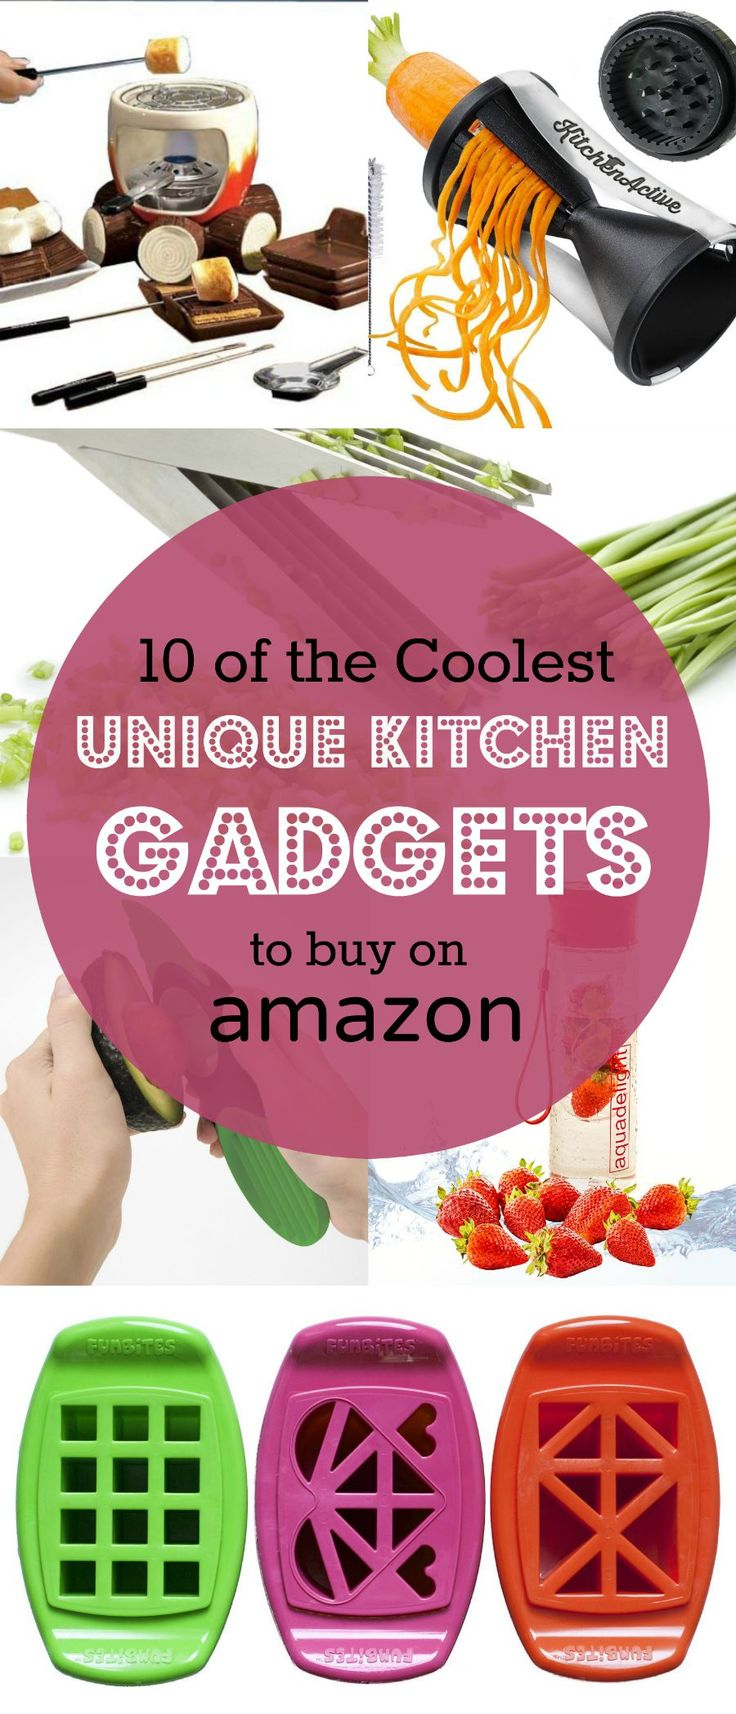 10 of the Coolest Unique Kitchen Gadgets, Appliances and Cookware to buy on Amazon :: These are awesome!